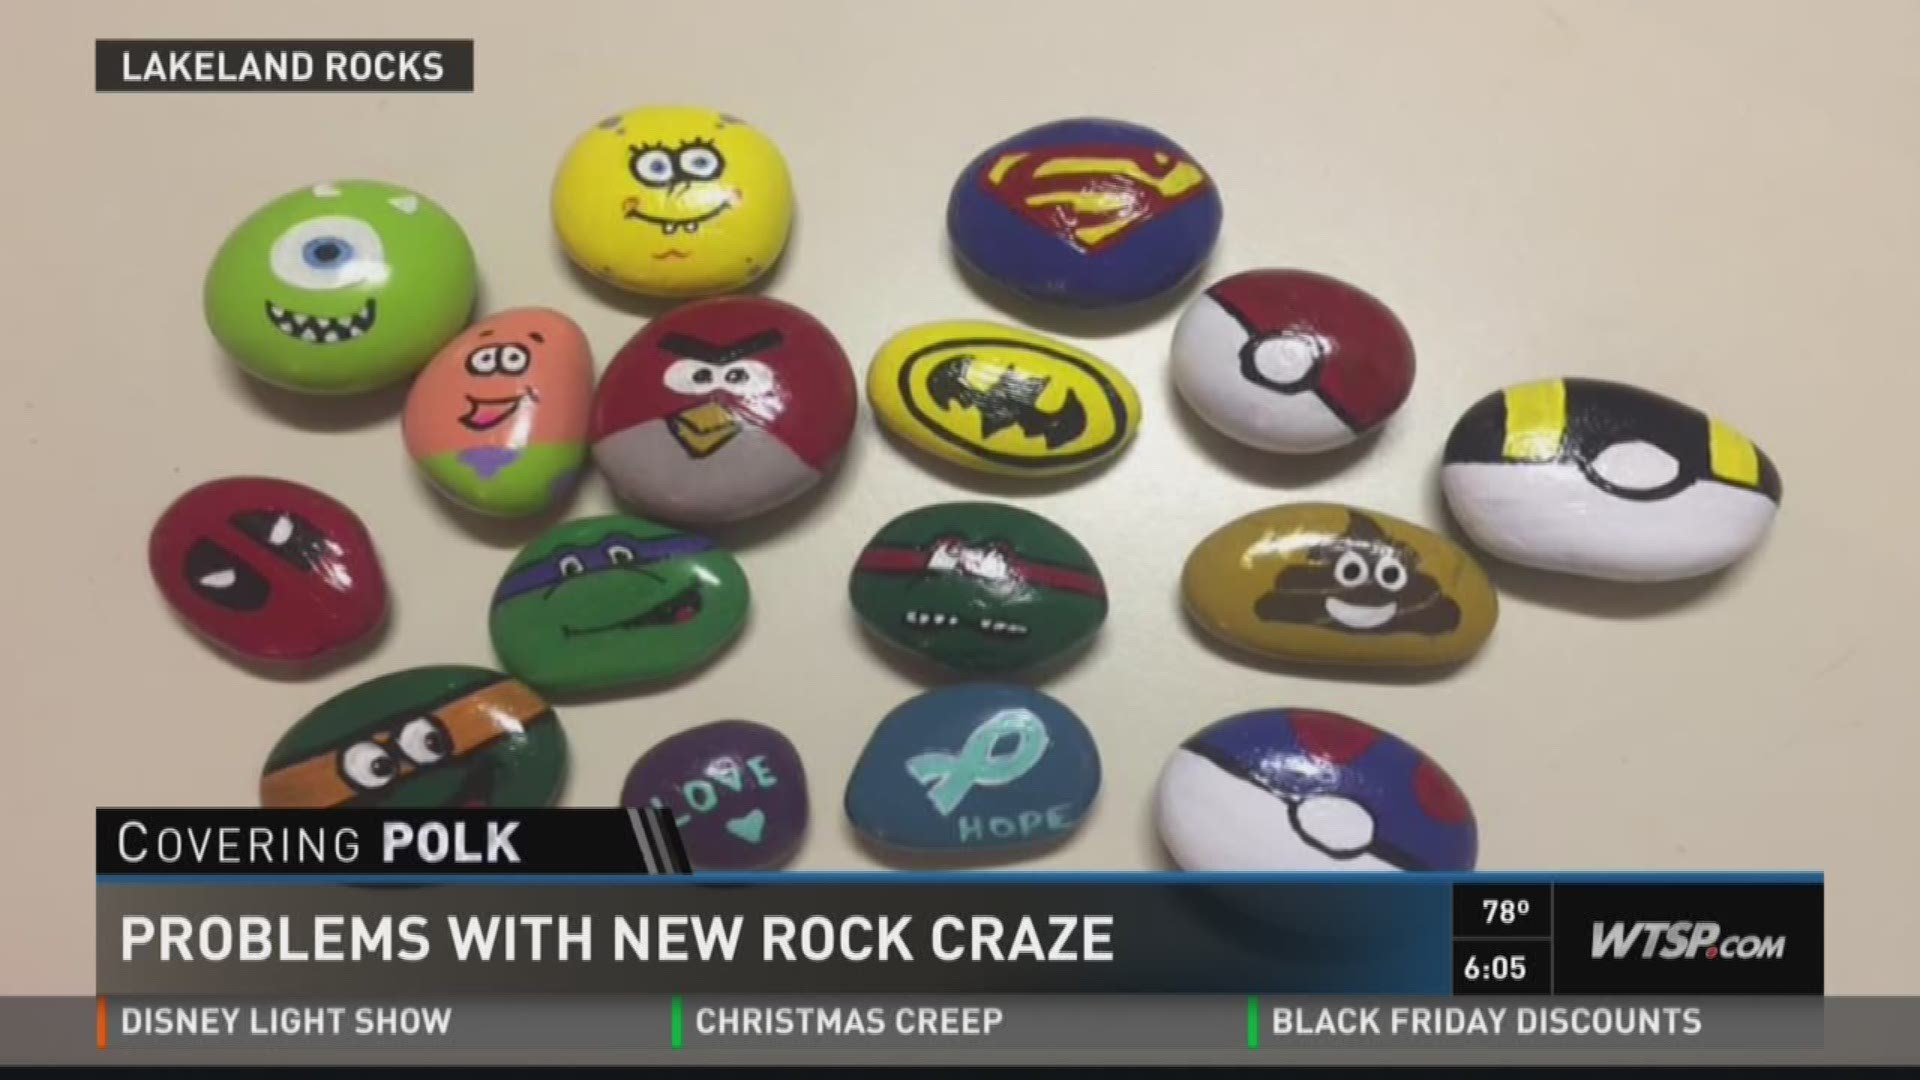 Lakeland Rocks Vandals Told To Cut It Out Wtsp Com